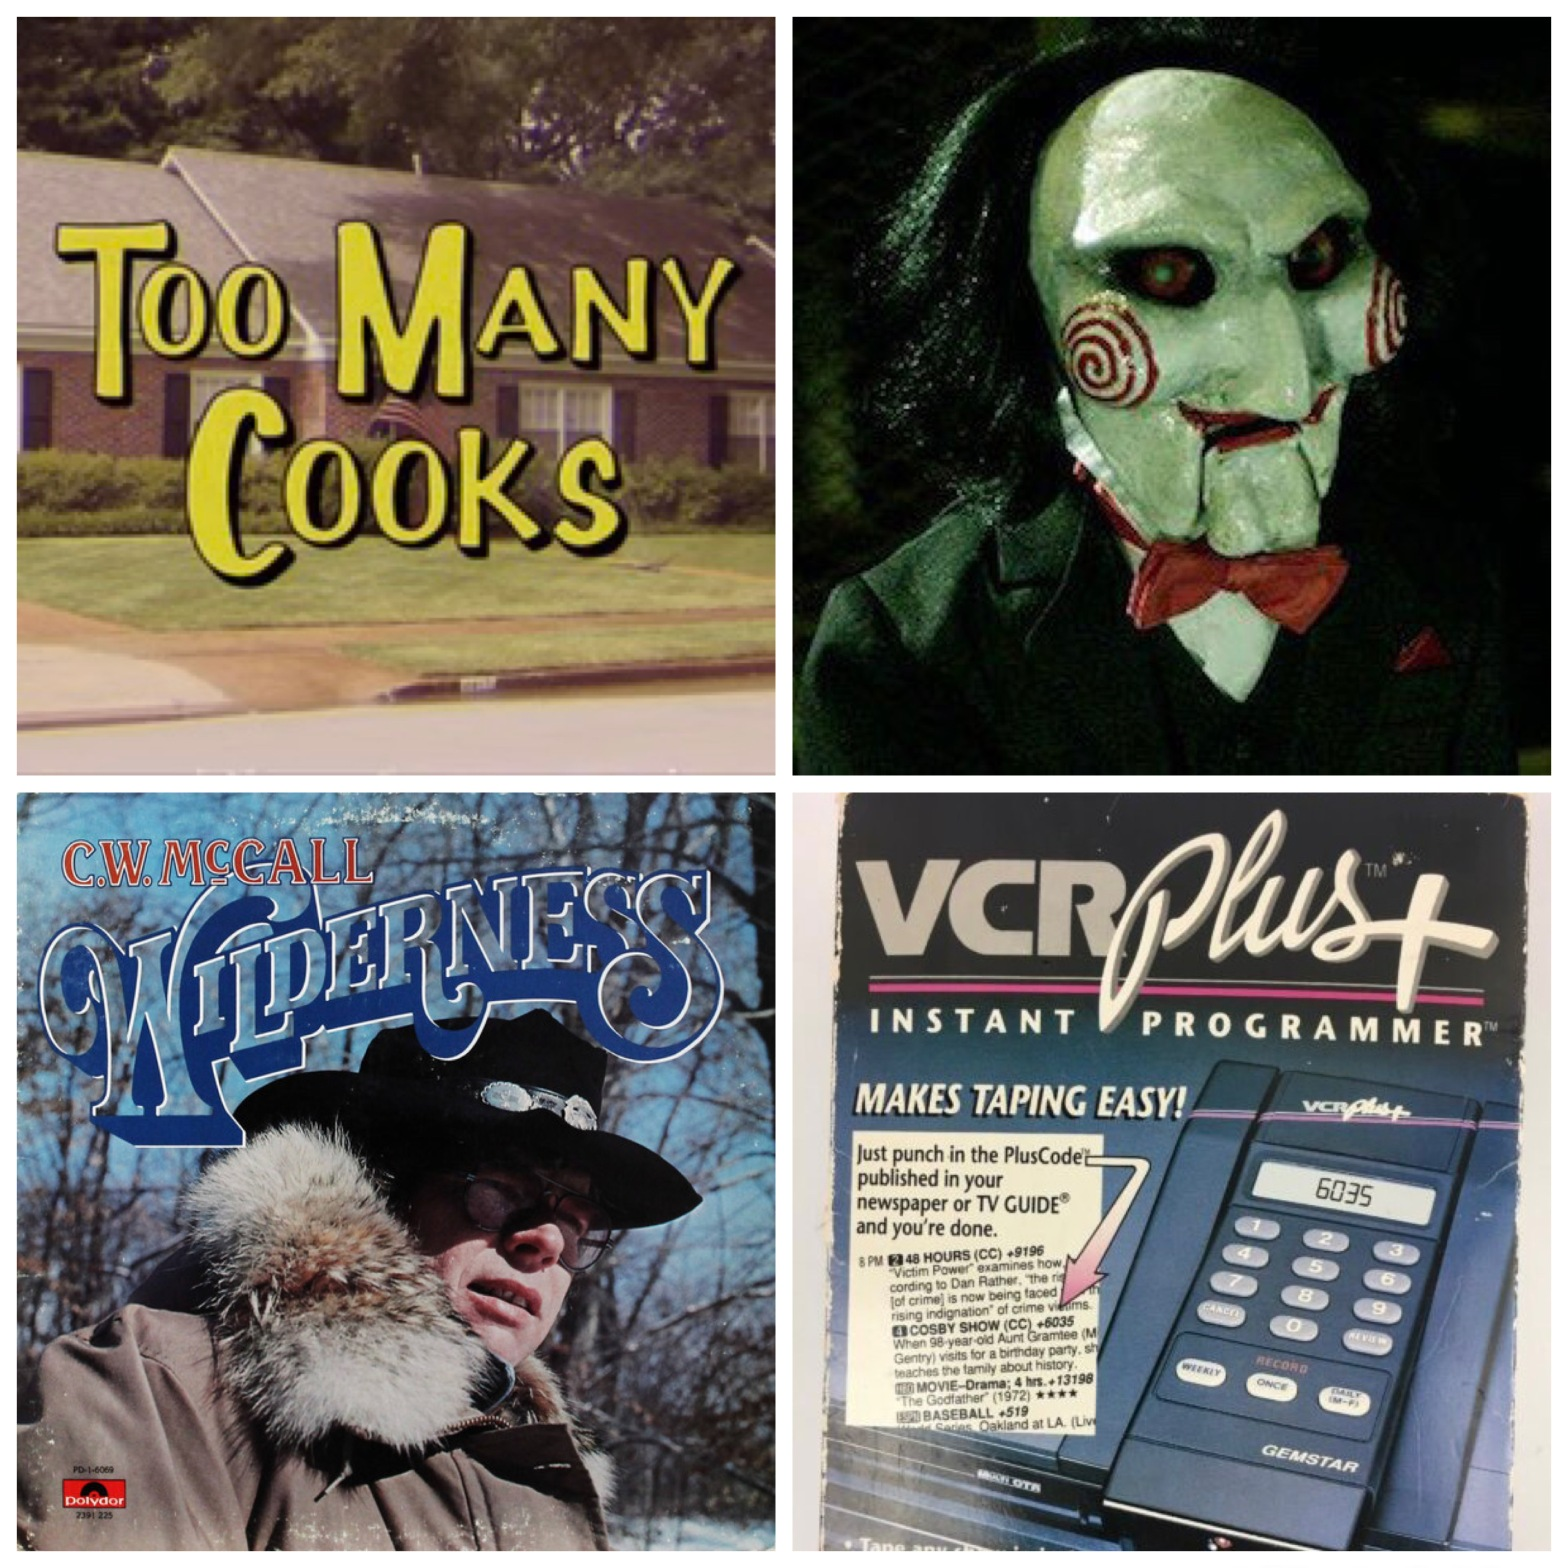 Too Many Cooks logo. The puppet from Saw. CW McCall. And VCR Plus.